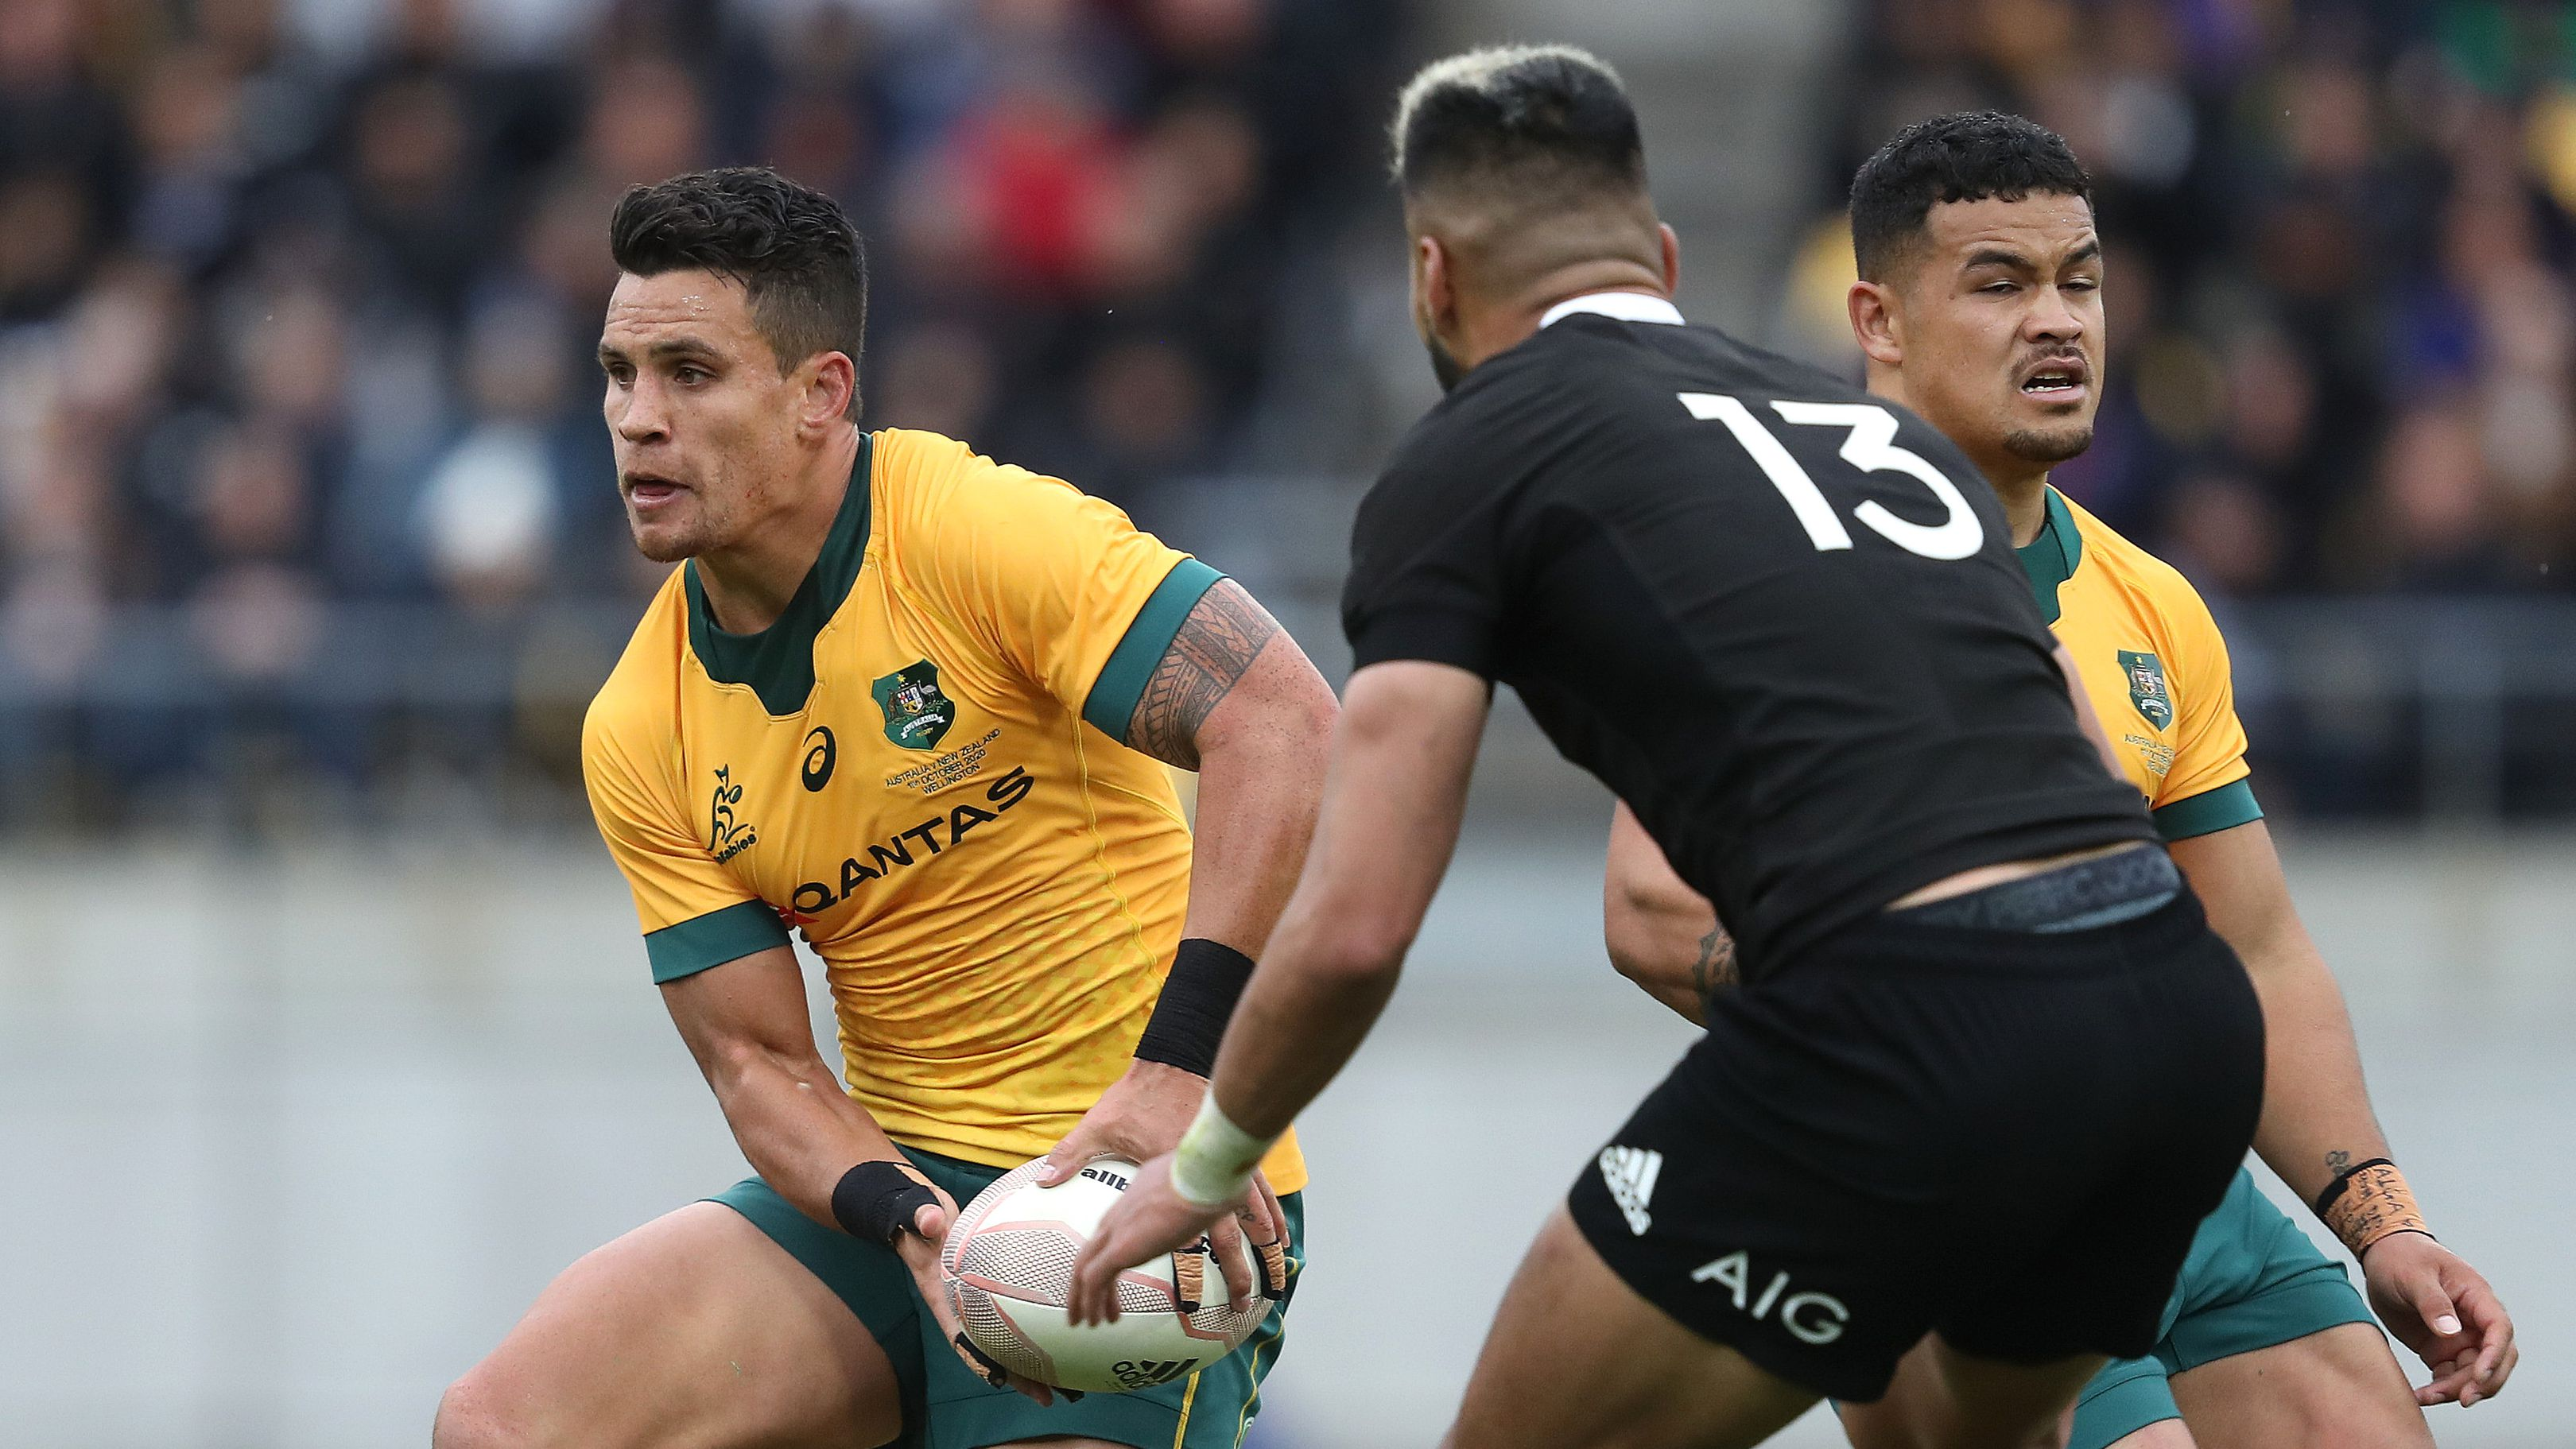 Wallabies granted travel exemption to fly to NZ